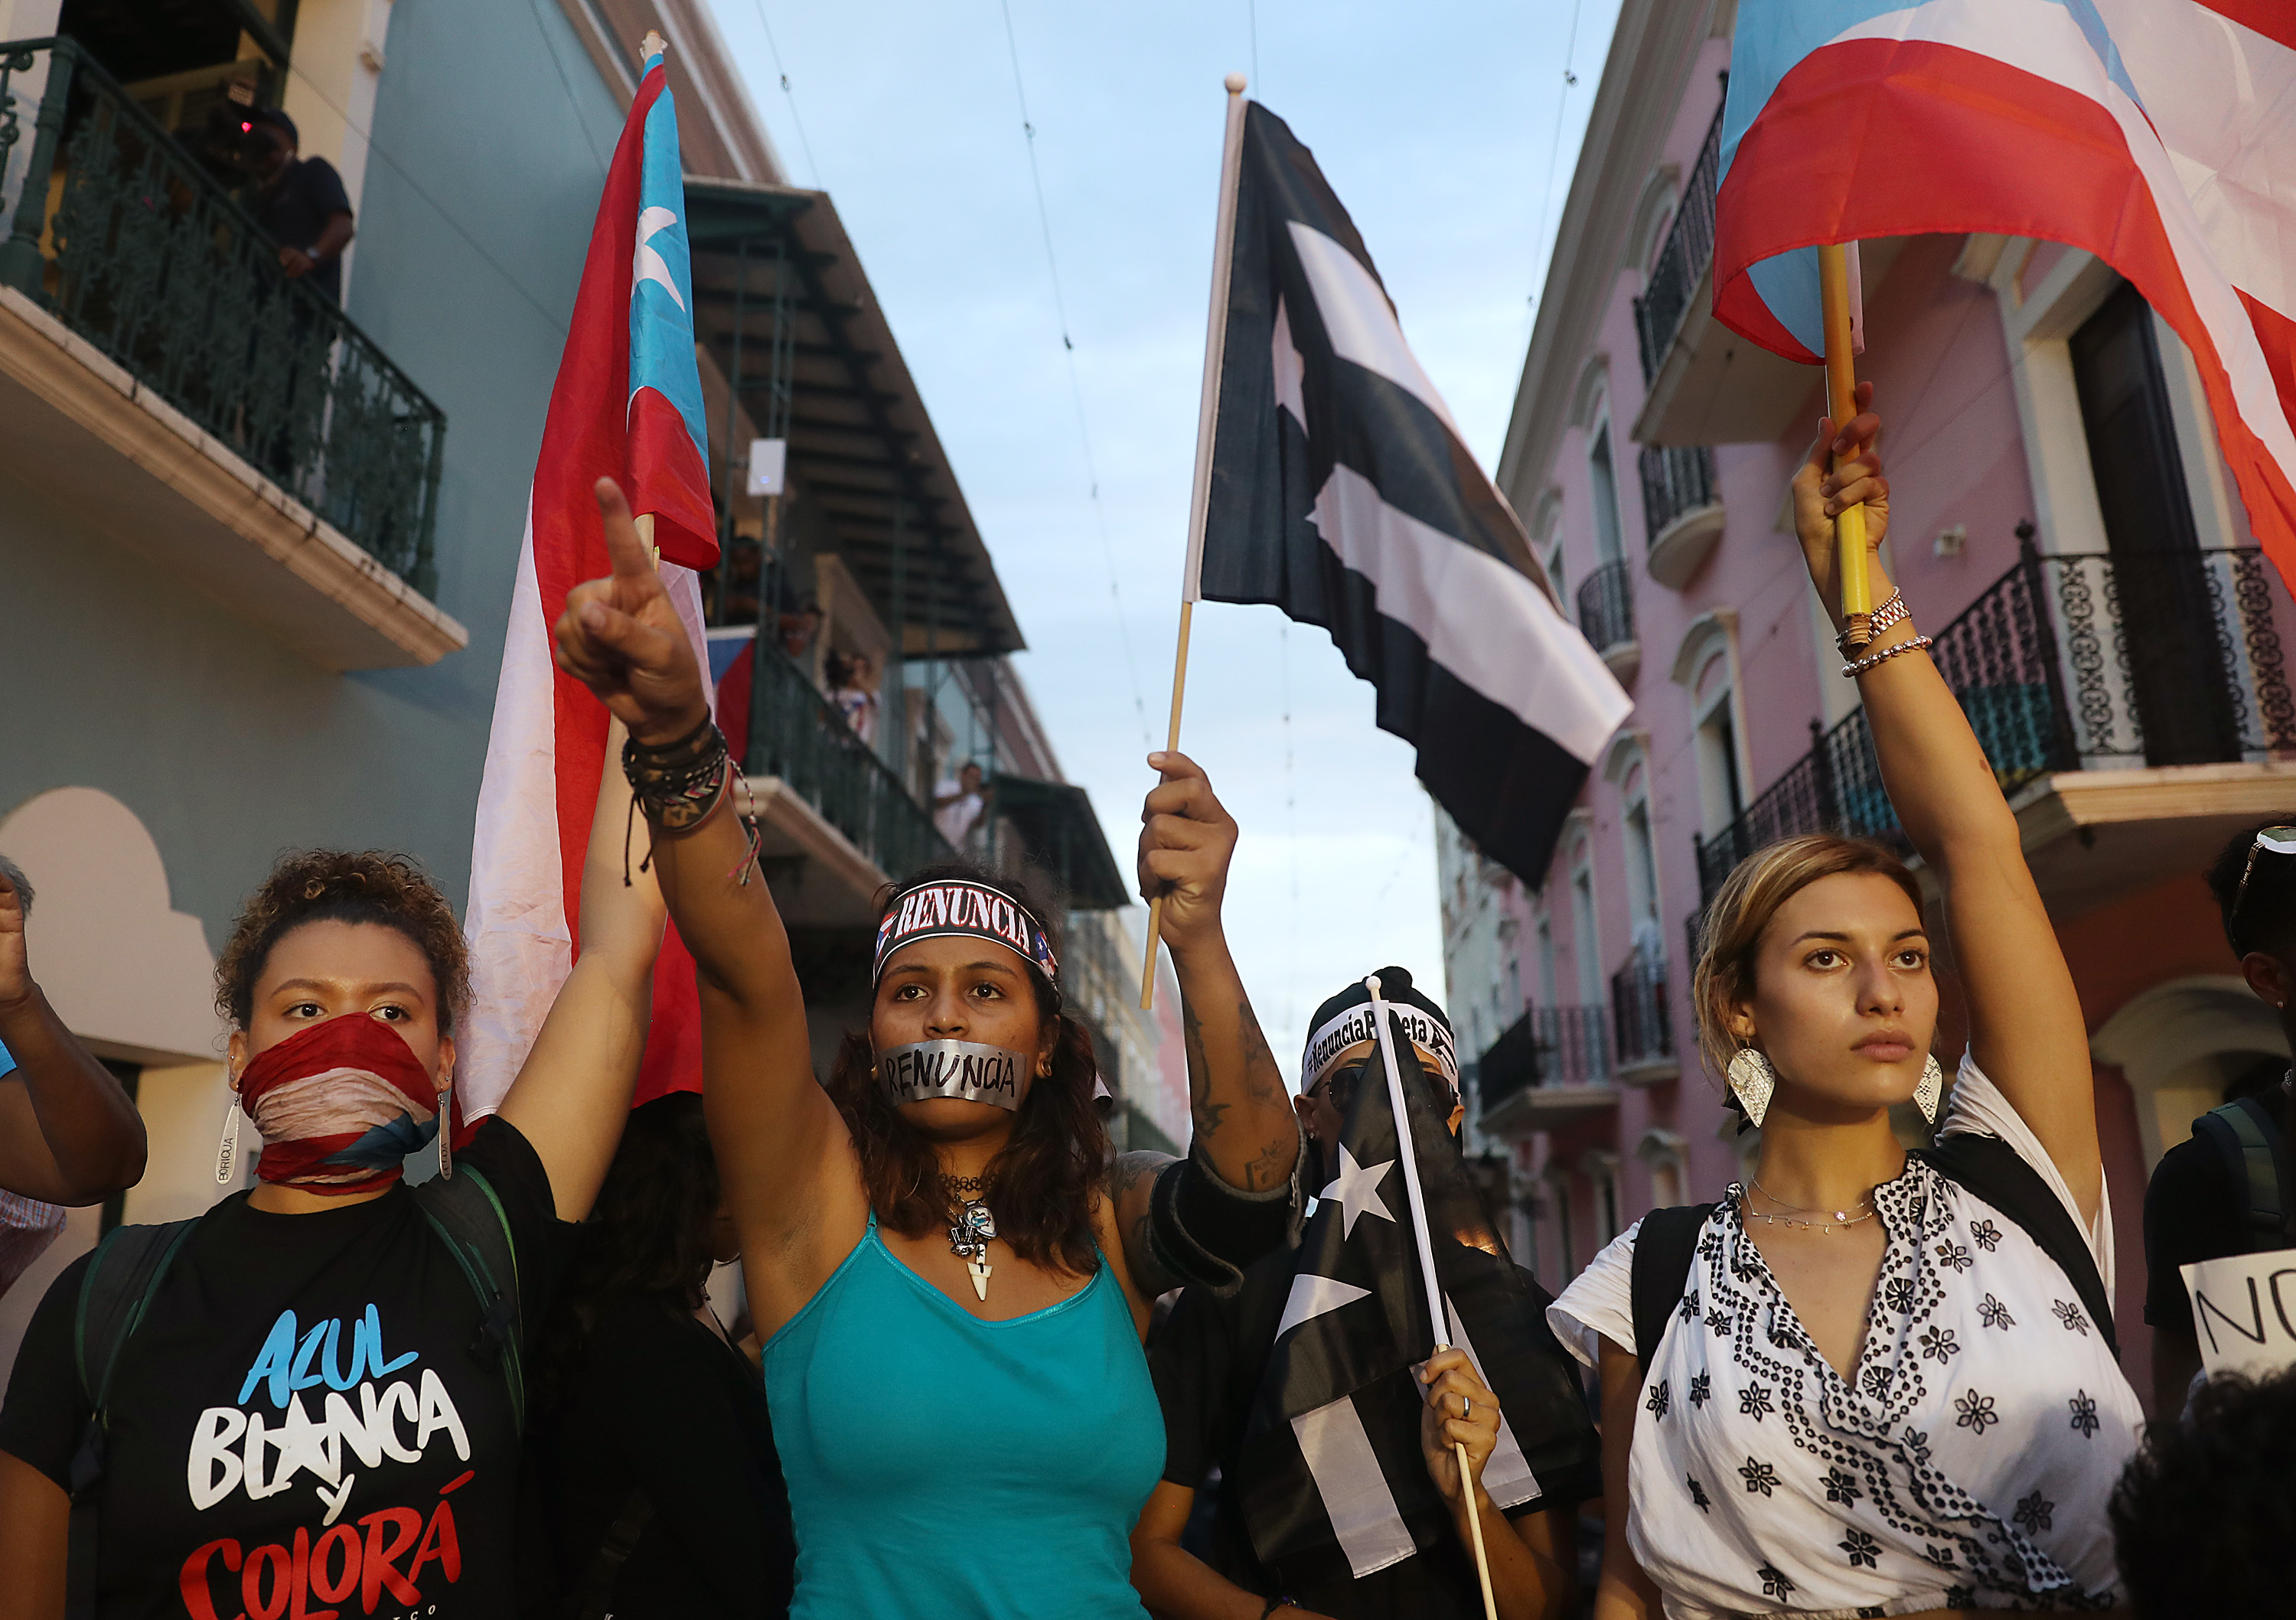 Three woman — two of whom have their mouths covered with tape or a scarf — wave Puerto Rican flags at a protest calling for the resignation of Gov. Ricardo Rosselló.